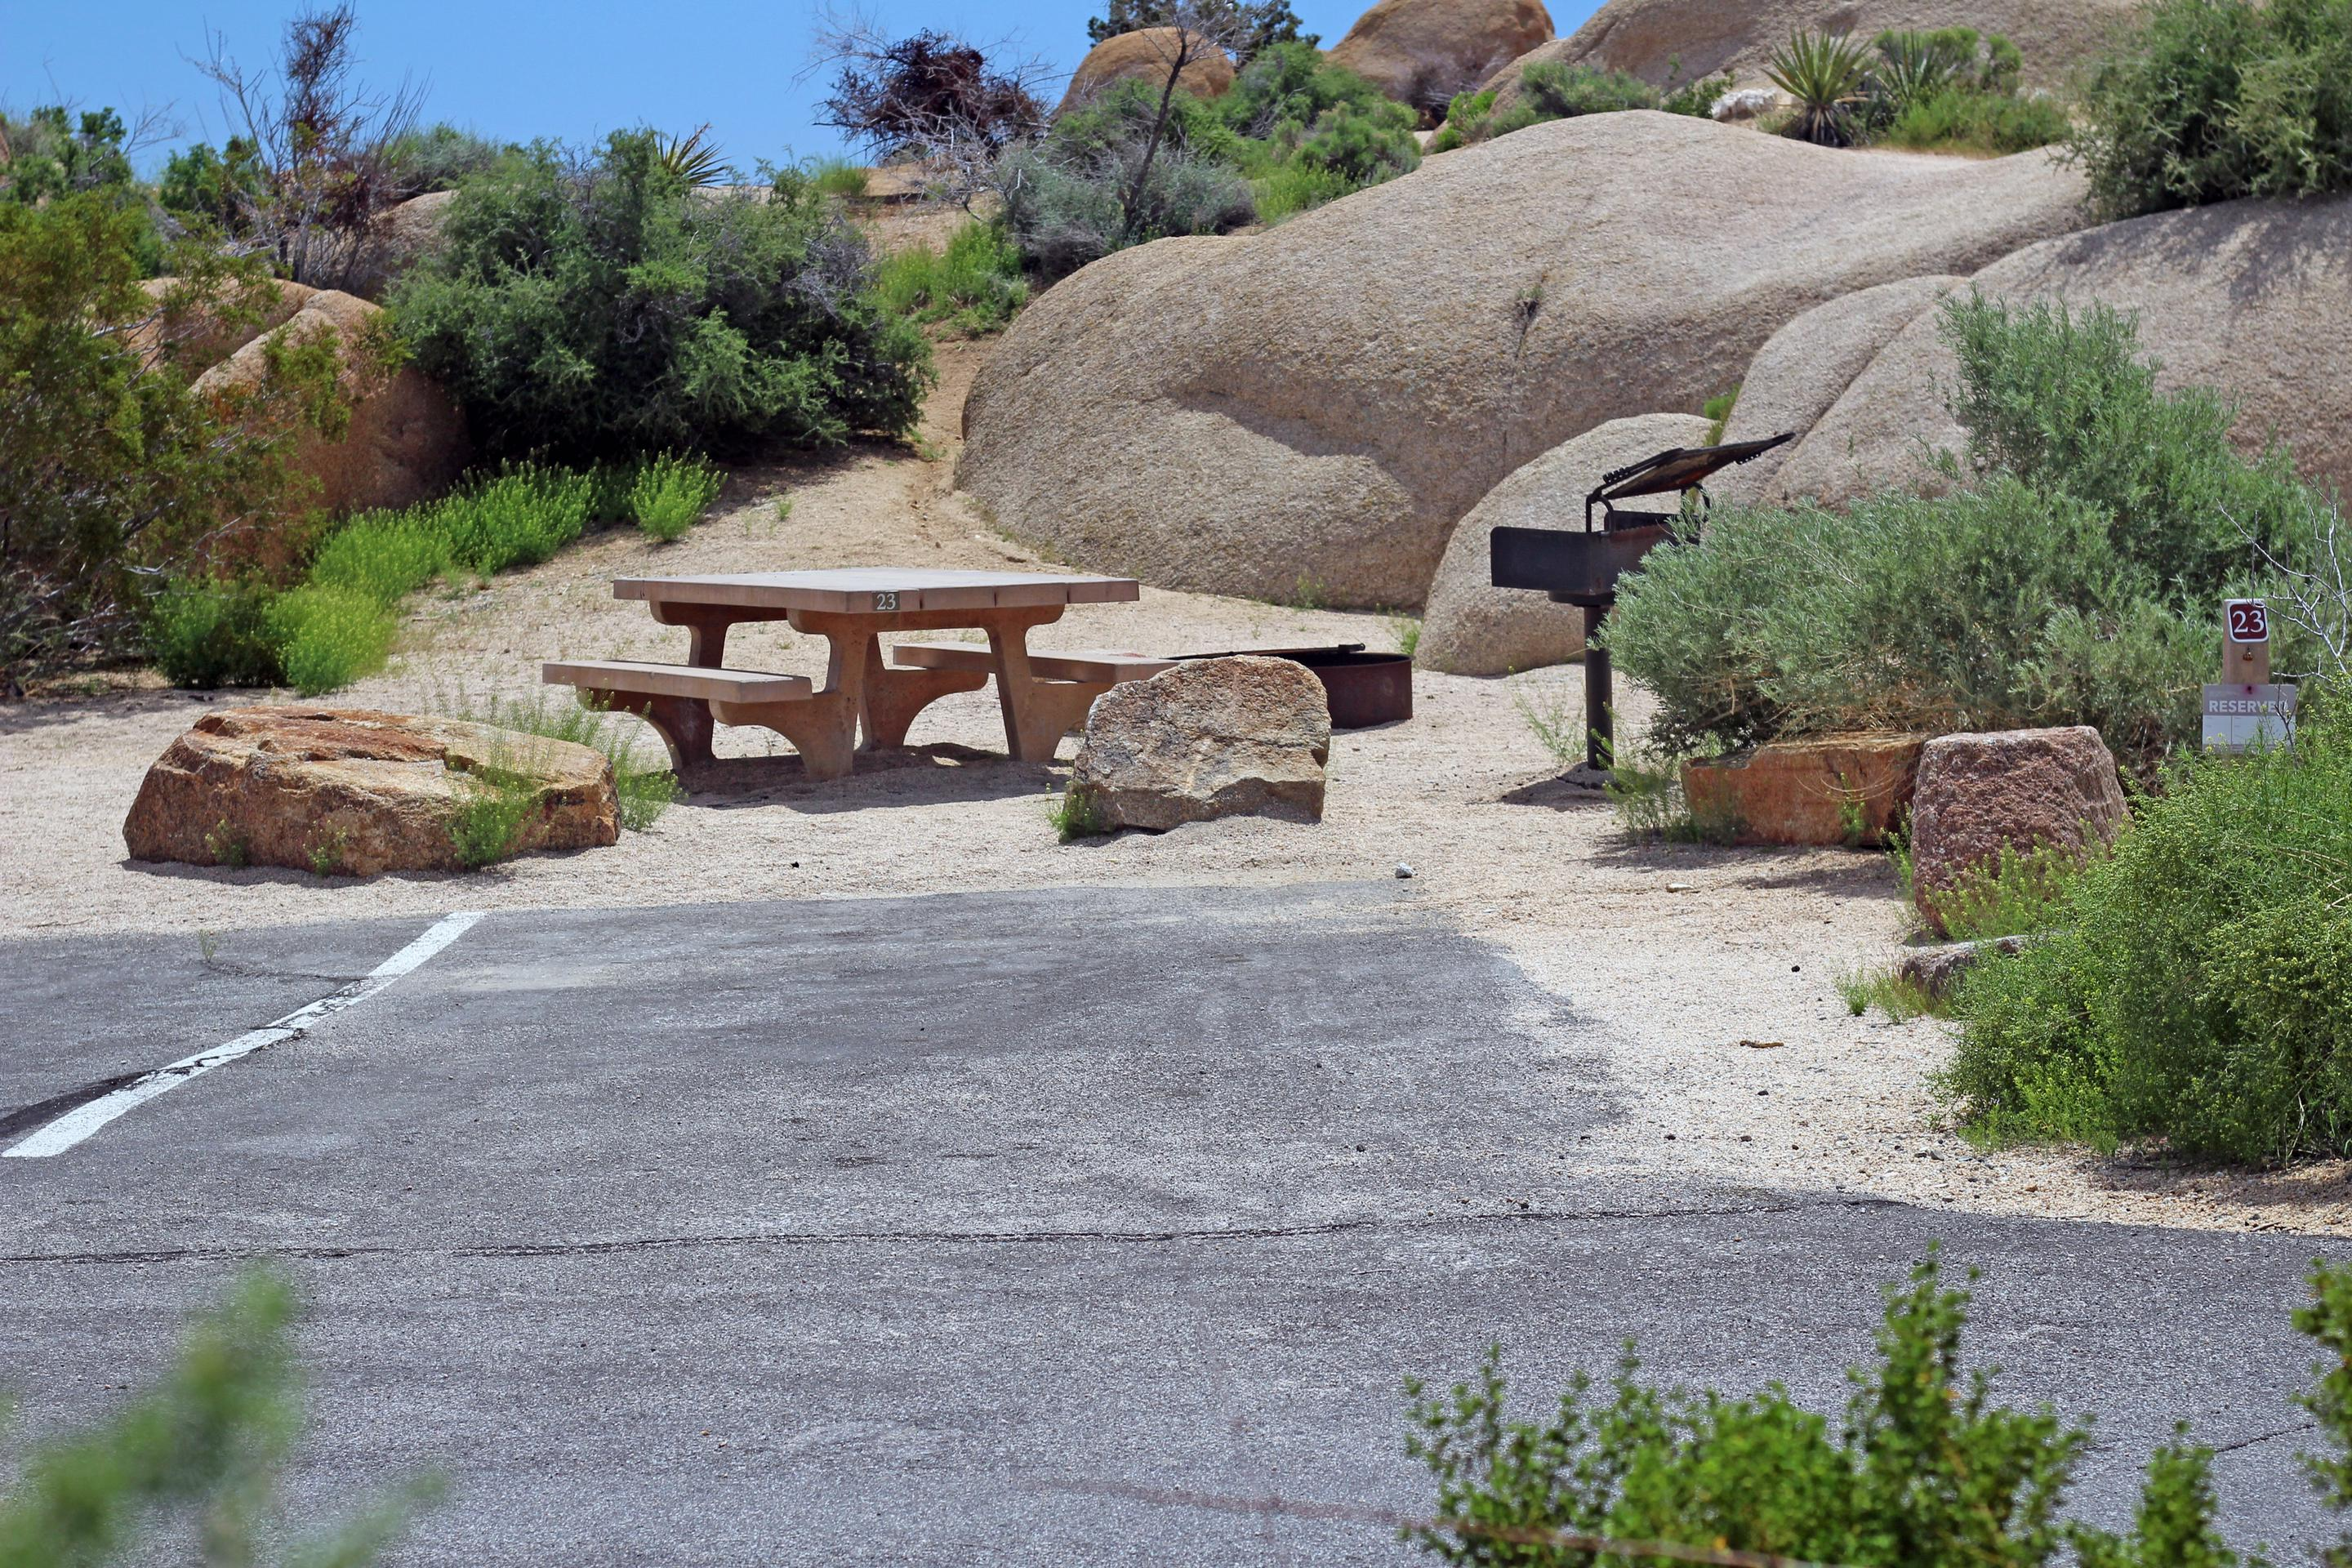 Shared parking for campsite. Picnic table surrounded by boulders and green plants.Shared parking for campsite.